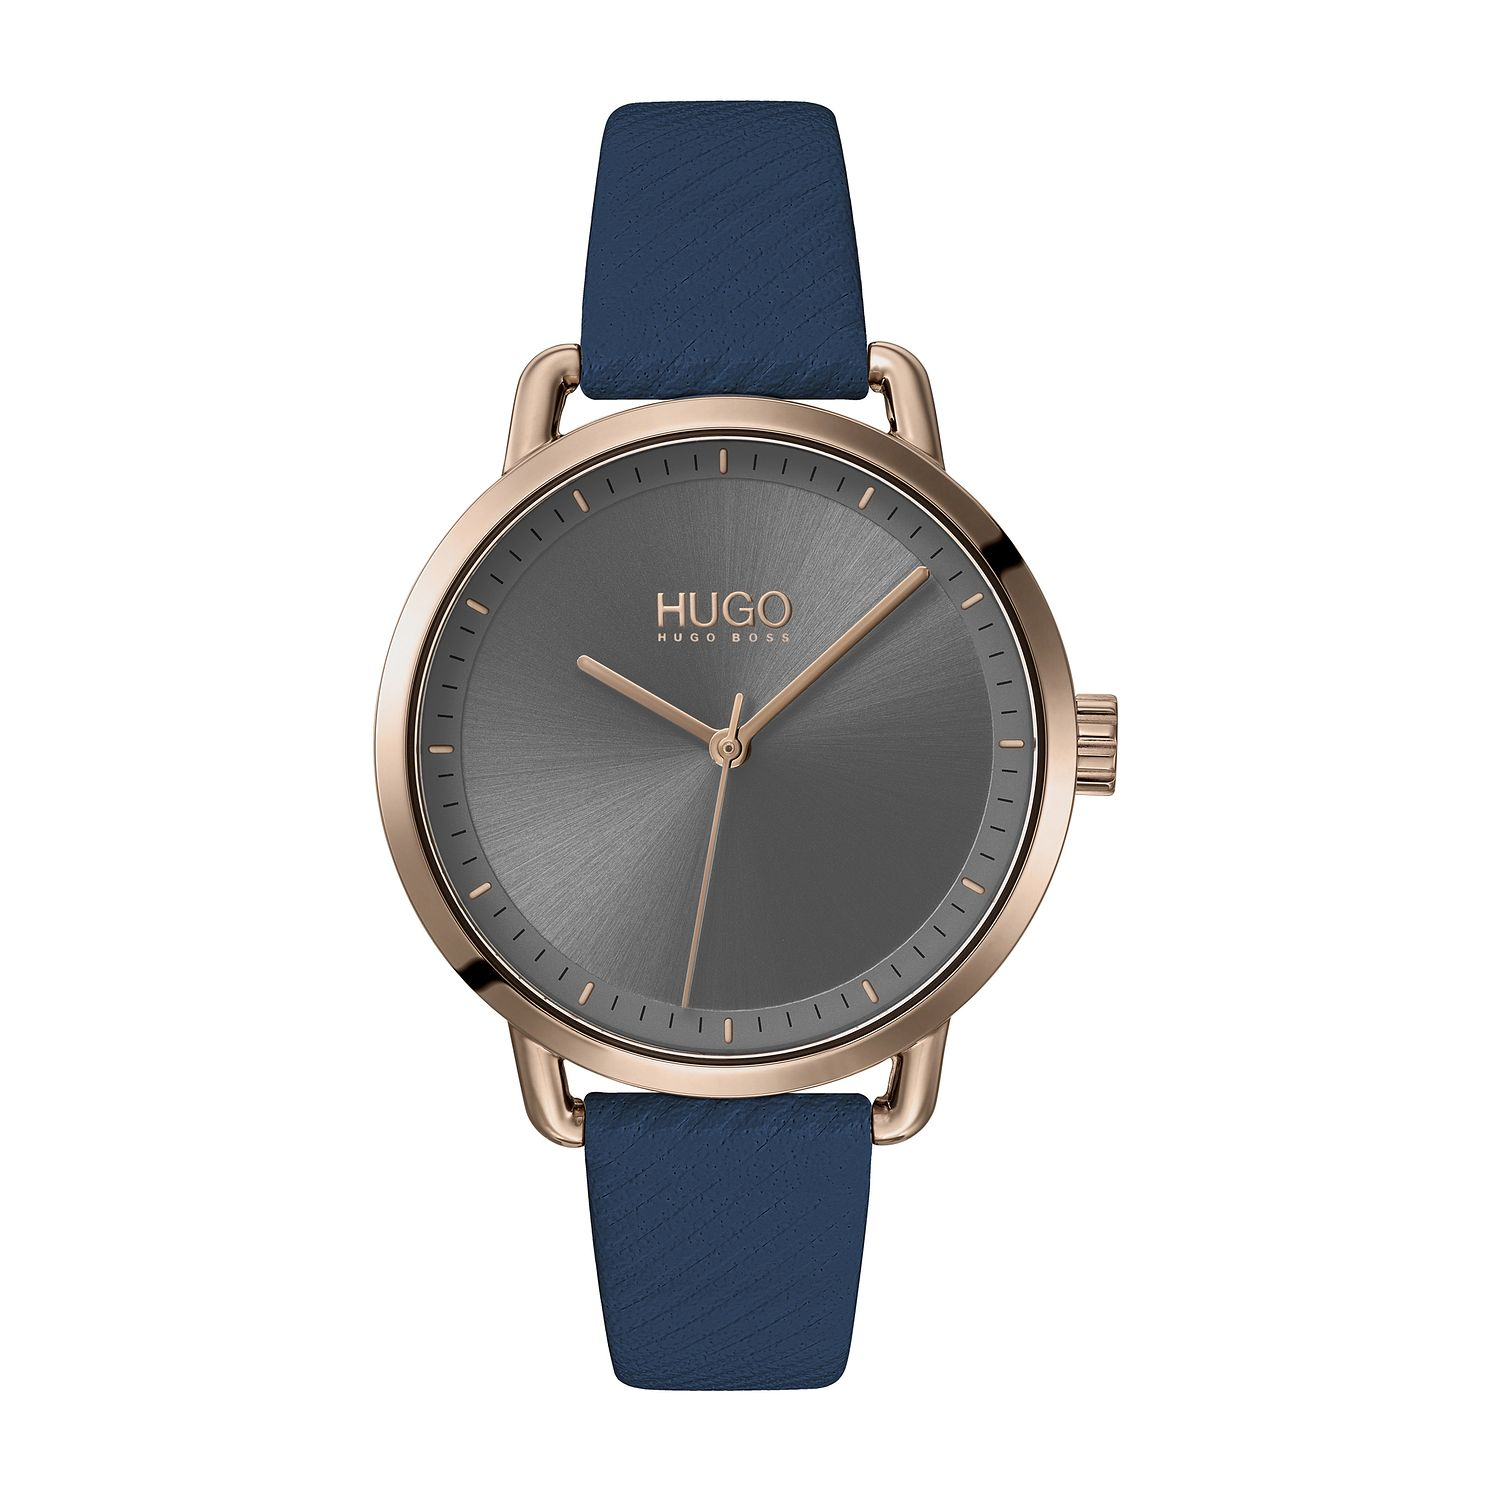 HUGO #MELLOW Blue Leather Strap Watch - Product number 4852877